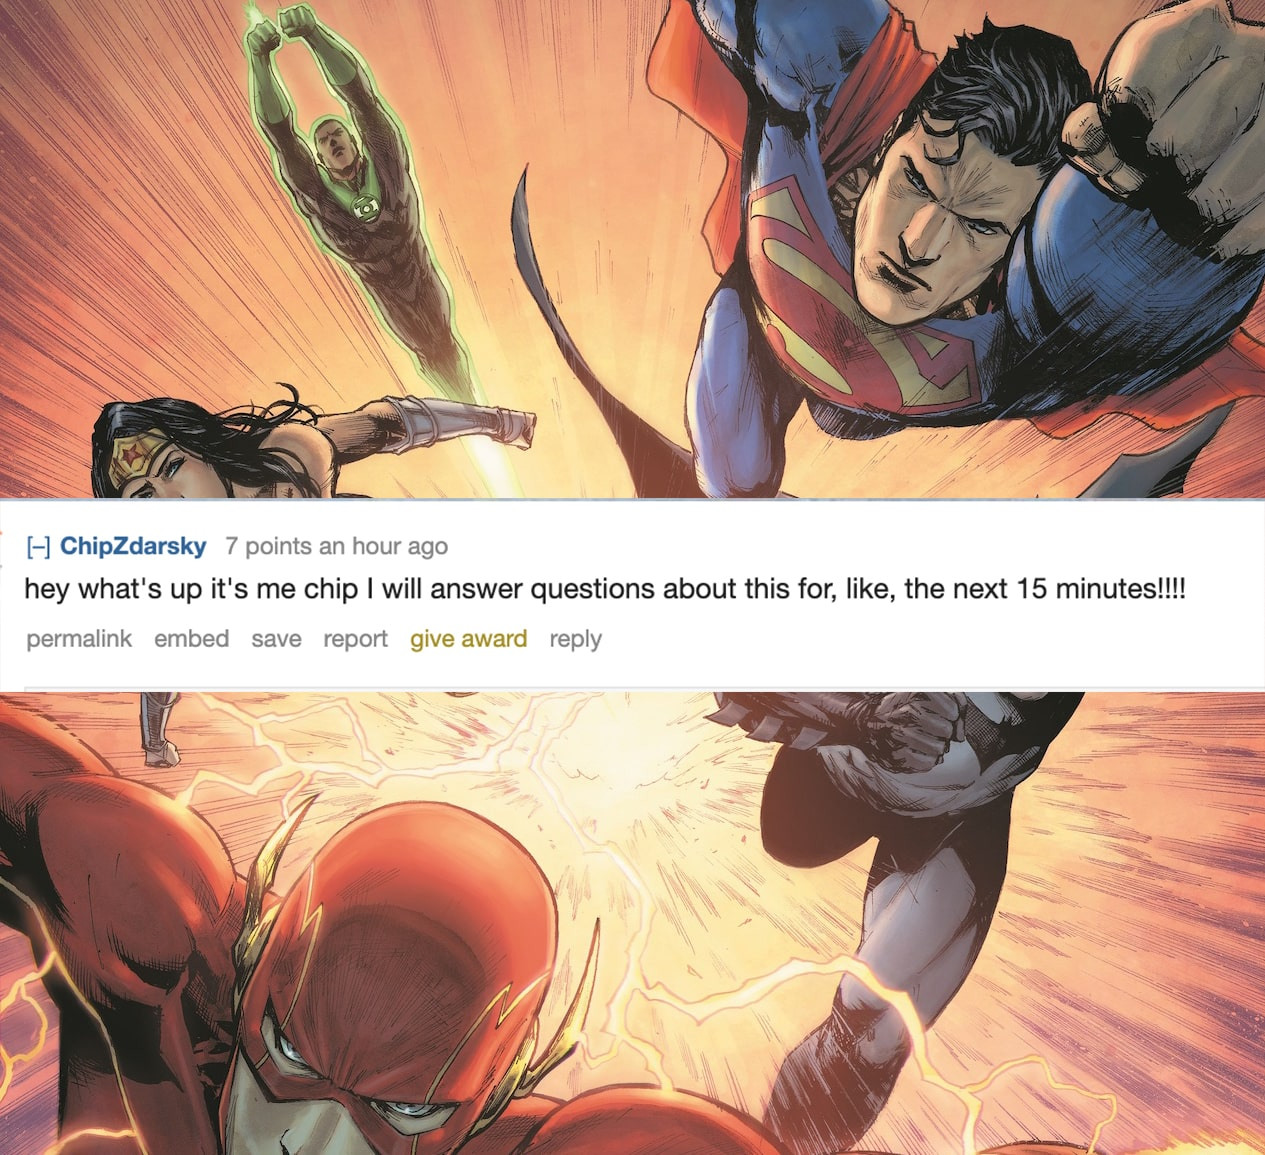 Chip Zdarsky has entered the chat: Answering 'Justice League' questions